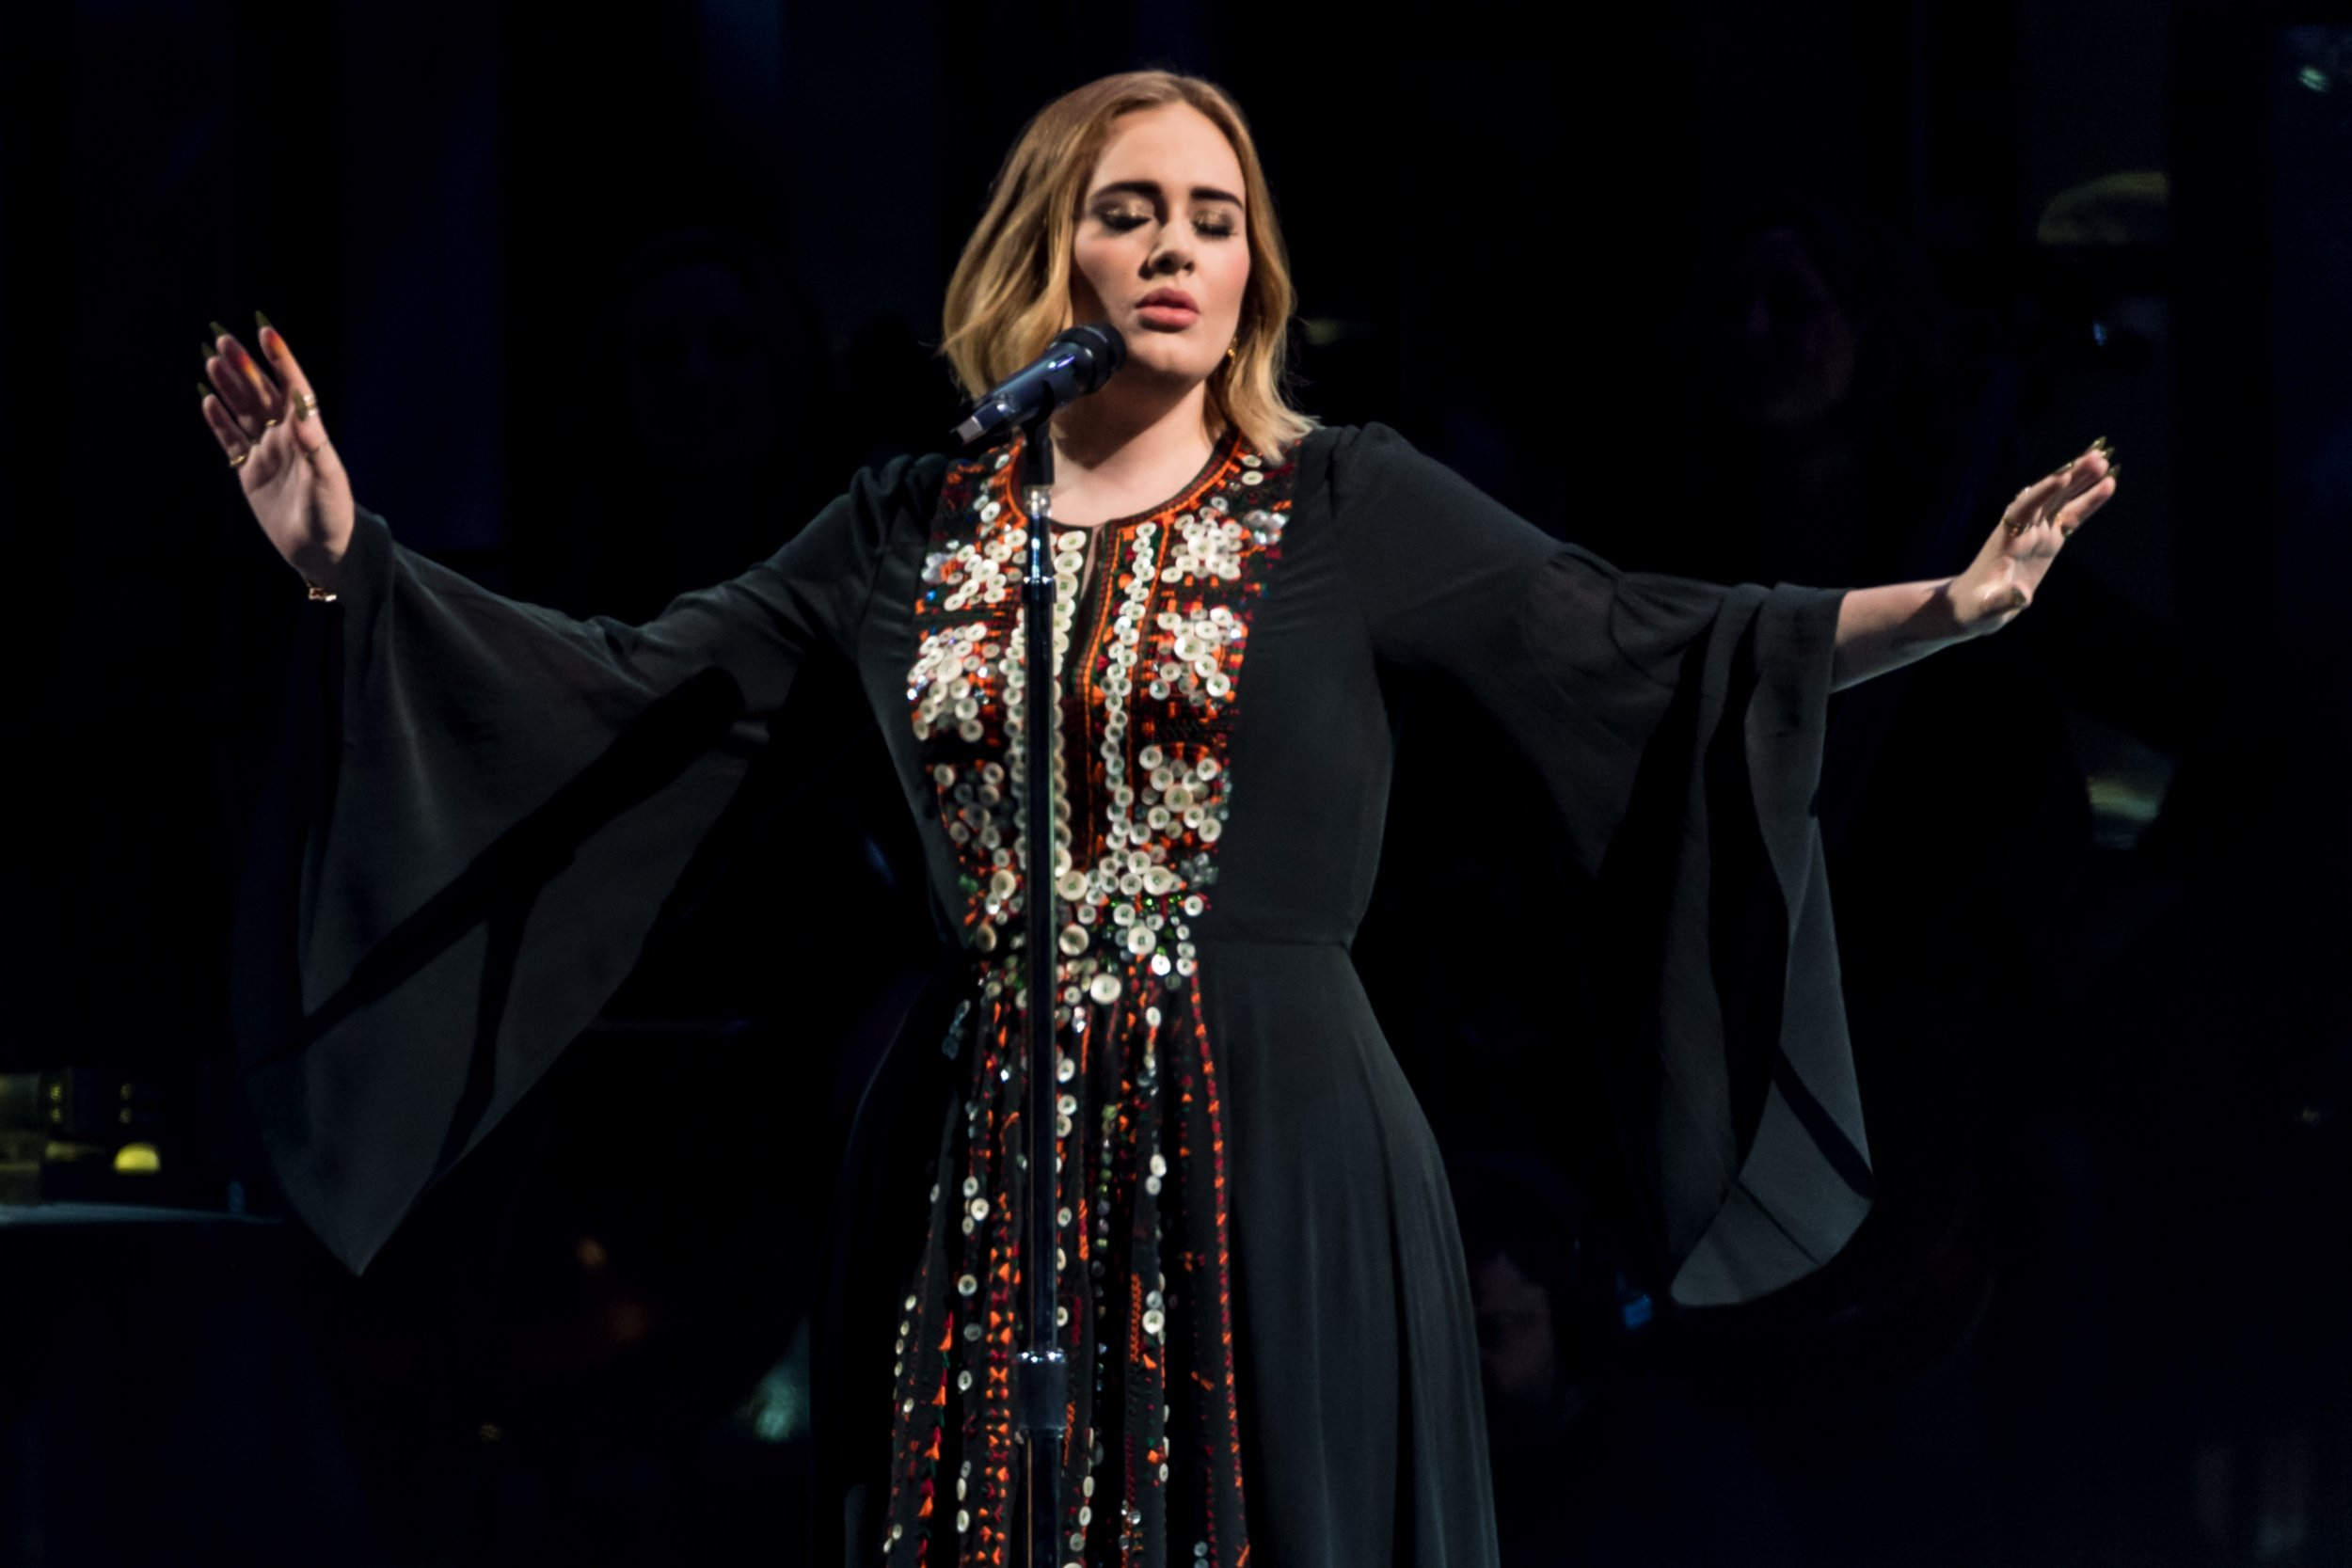 Adele at Glastonbury